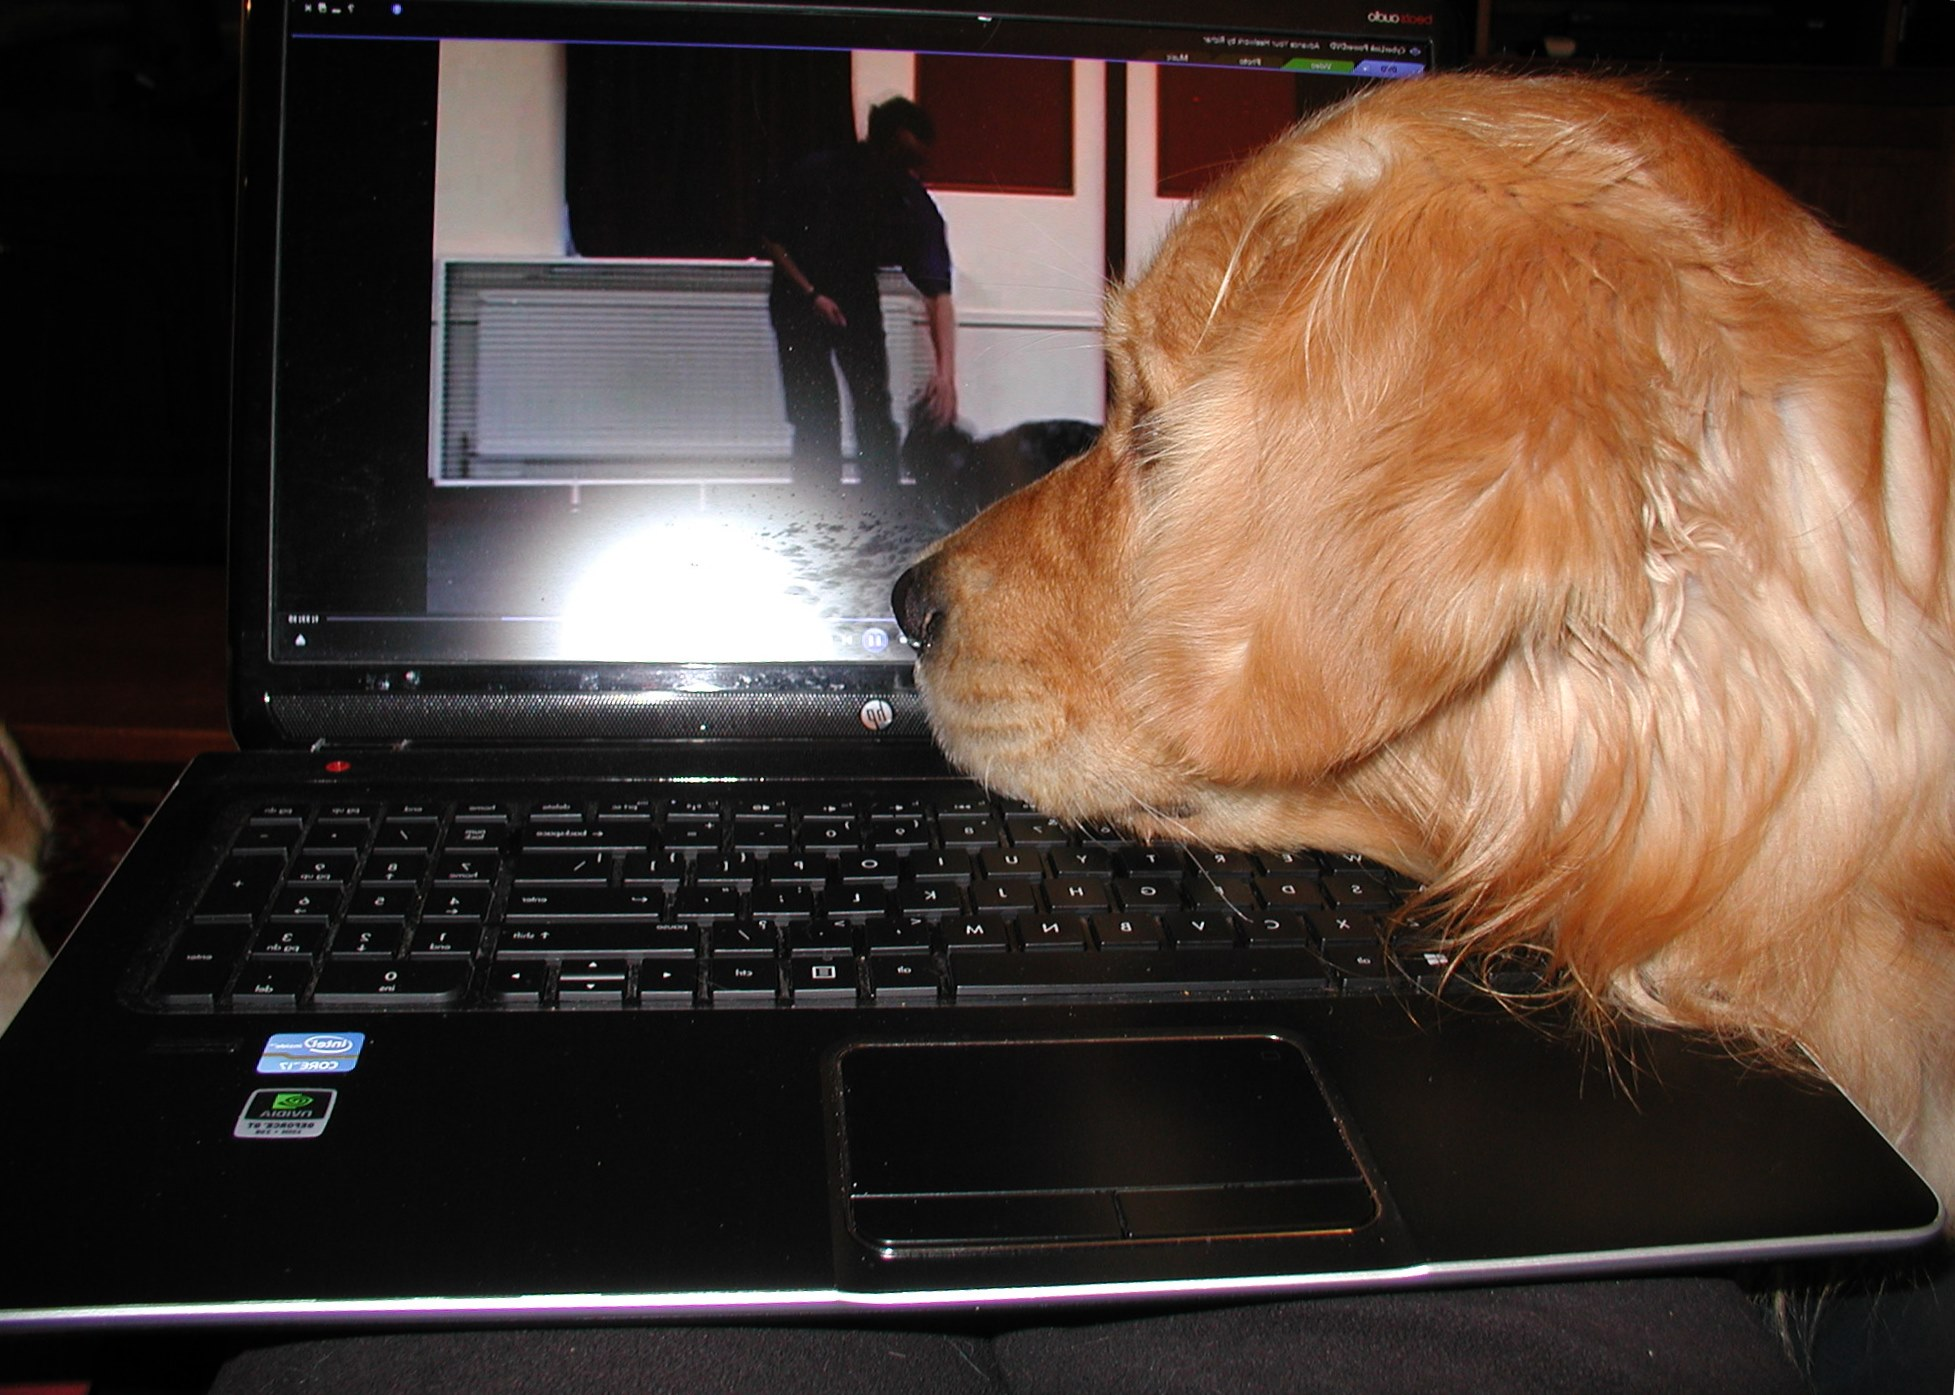 Martin is watching a Richard Curtis freestyle training video on his laptop.